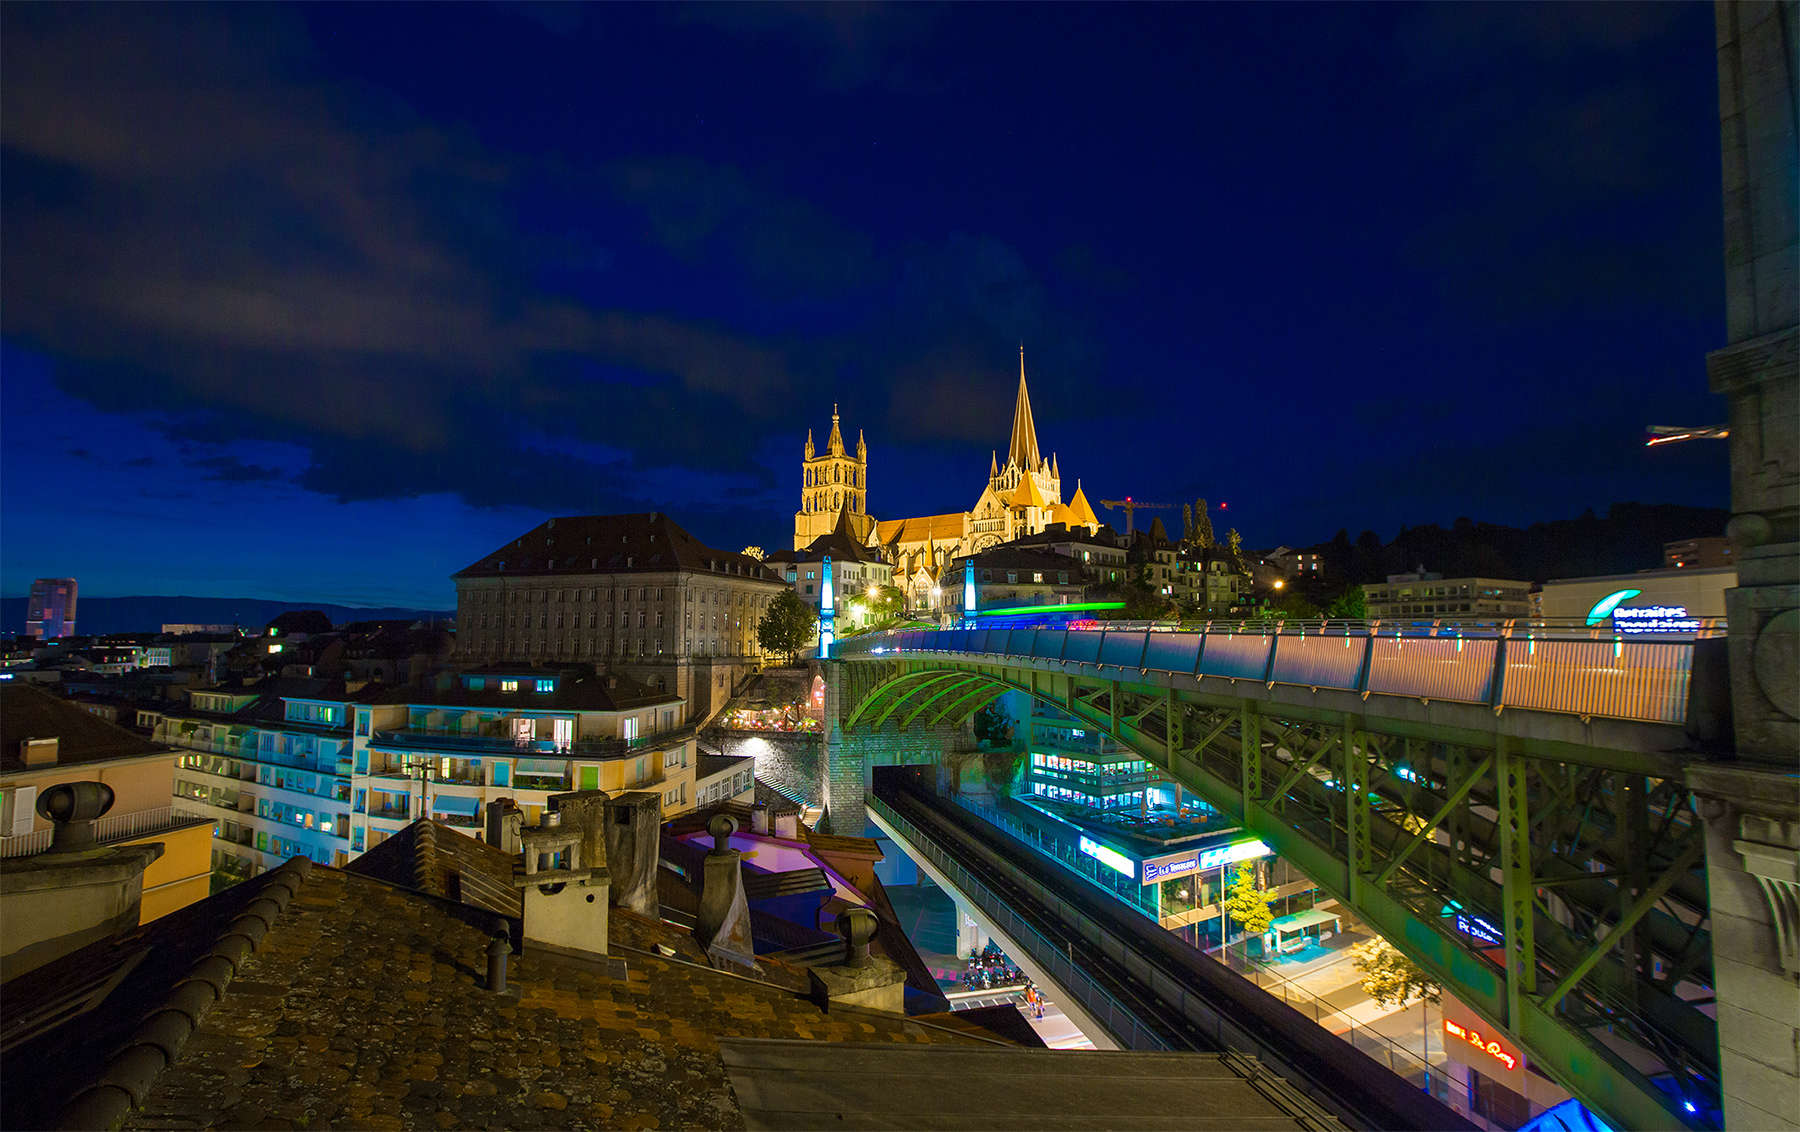 Beautiful view of the Lausanne Cathedrale and Bessiere bridge from the old town. The Lausanne Experience by Sylvain Botter, all right reserved